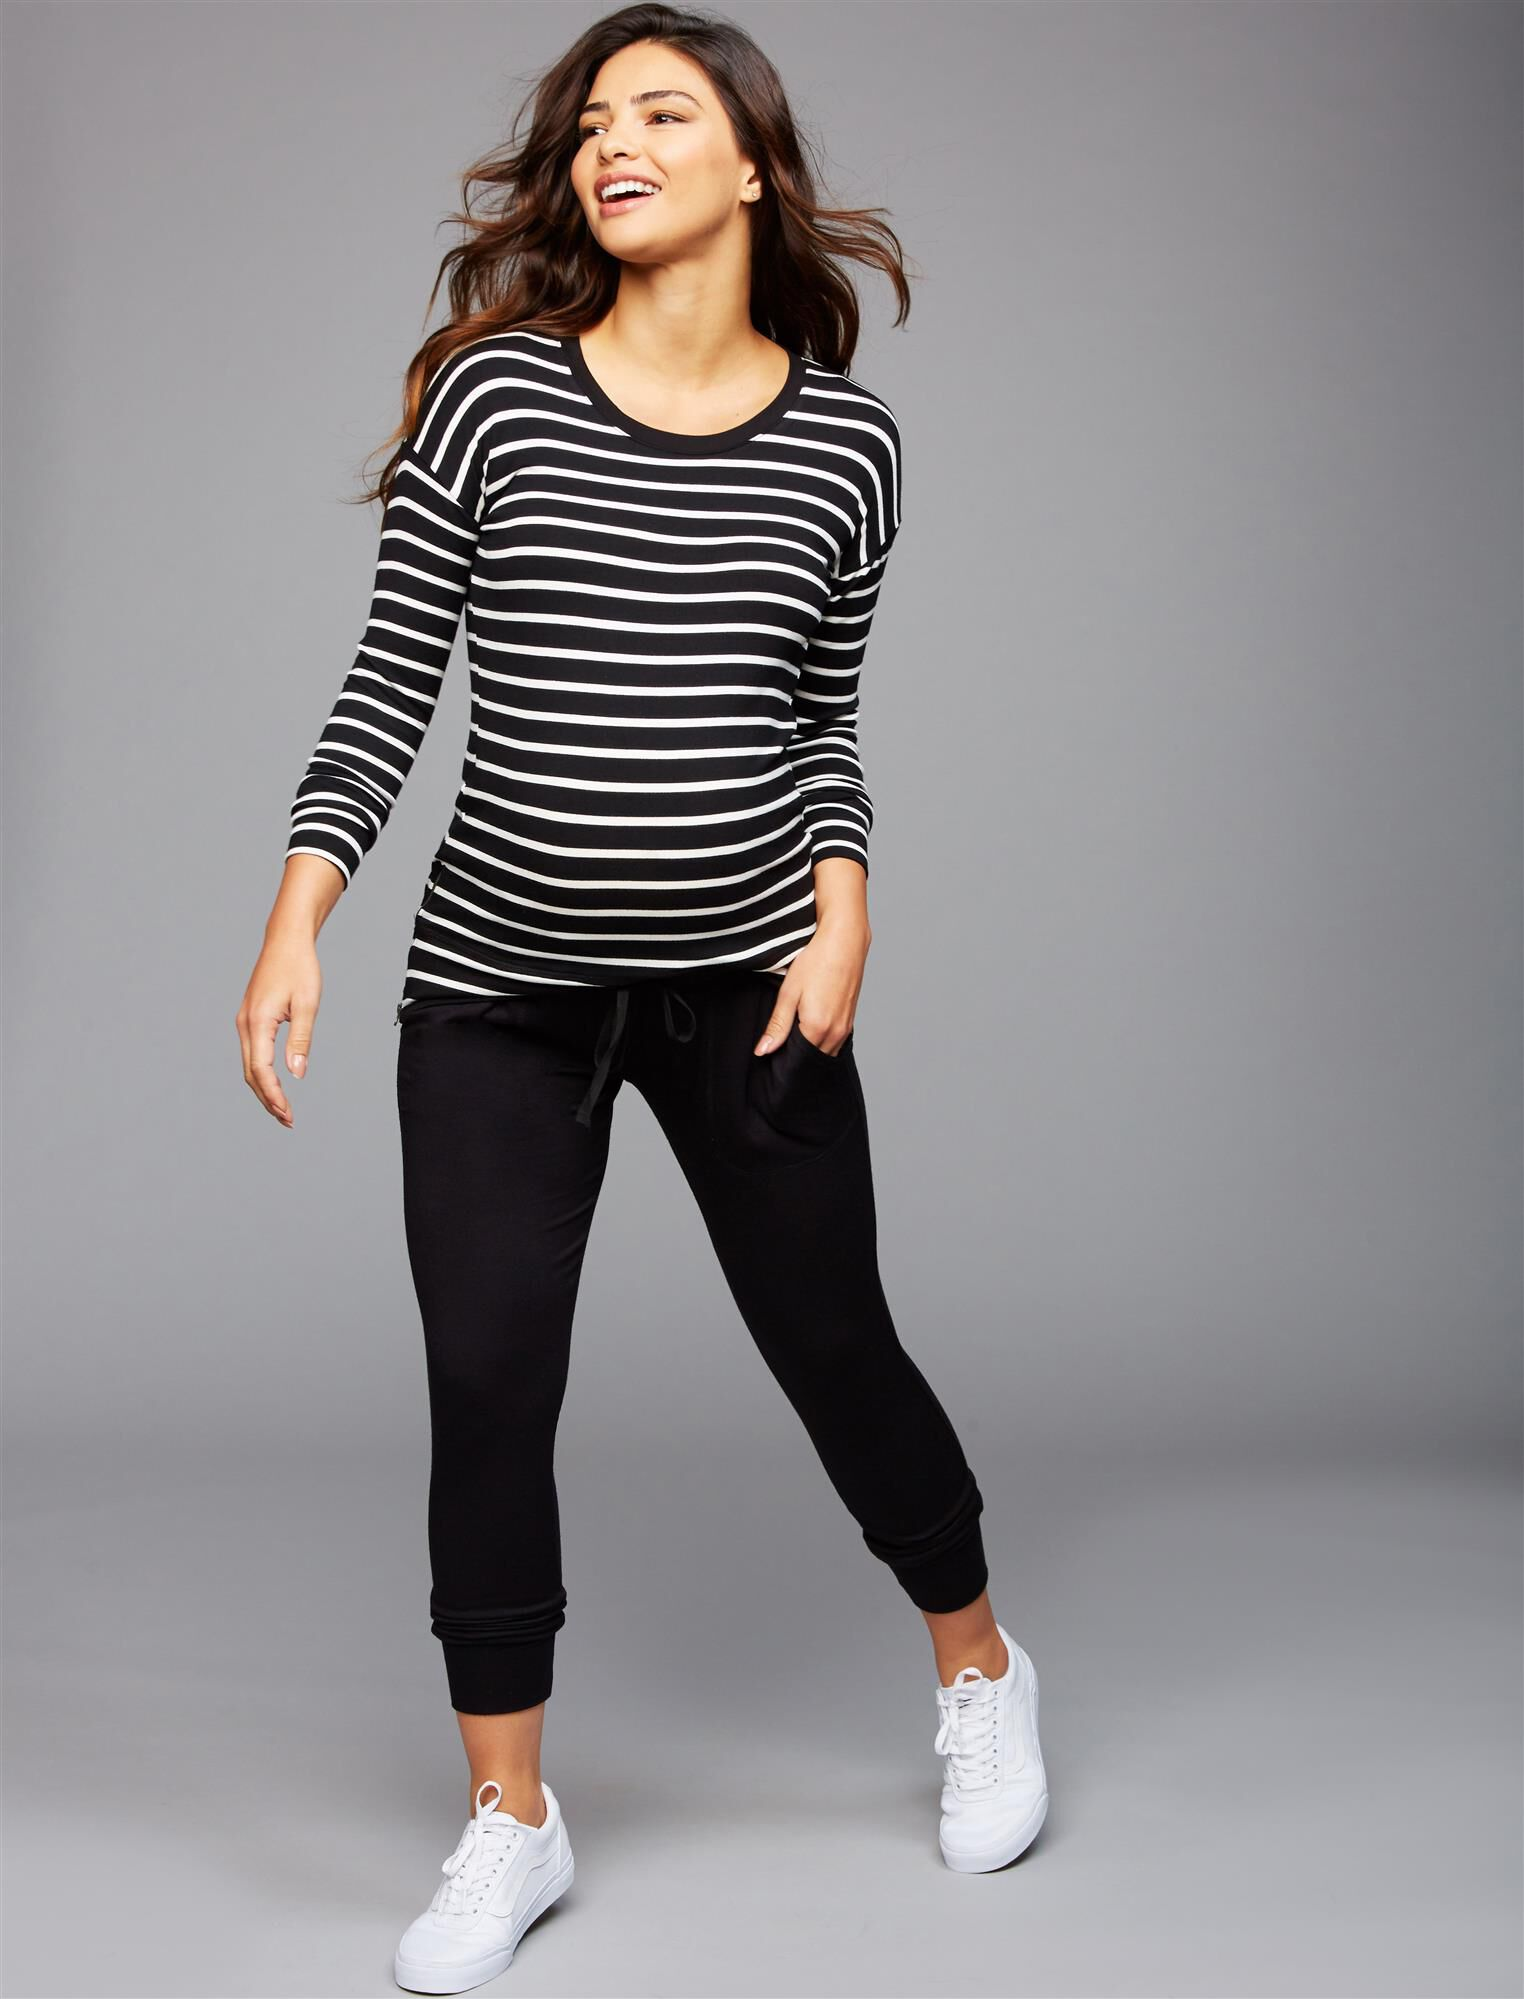 Under Belly Jogger Maternity Pants